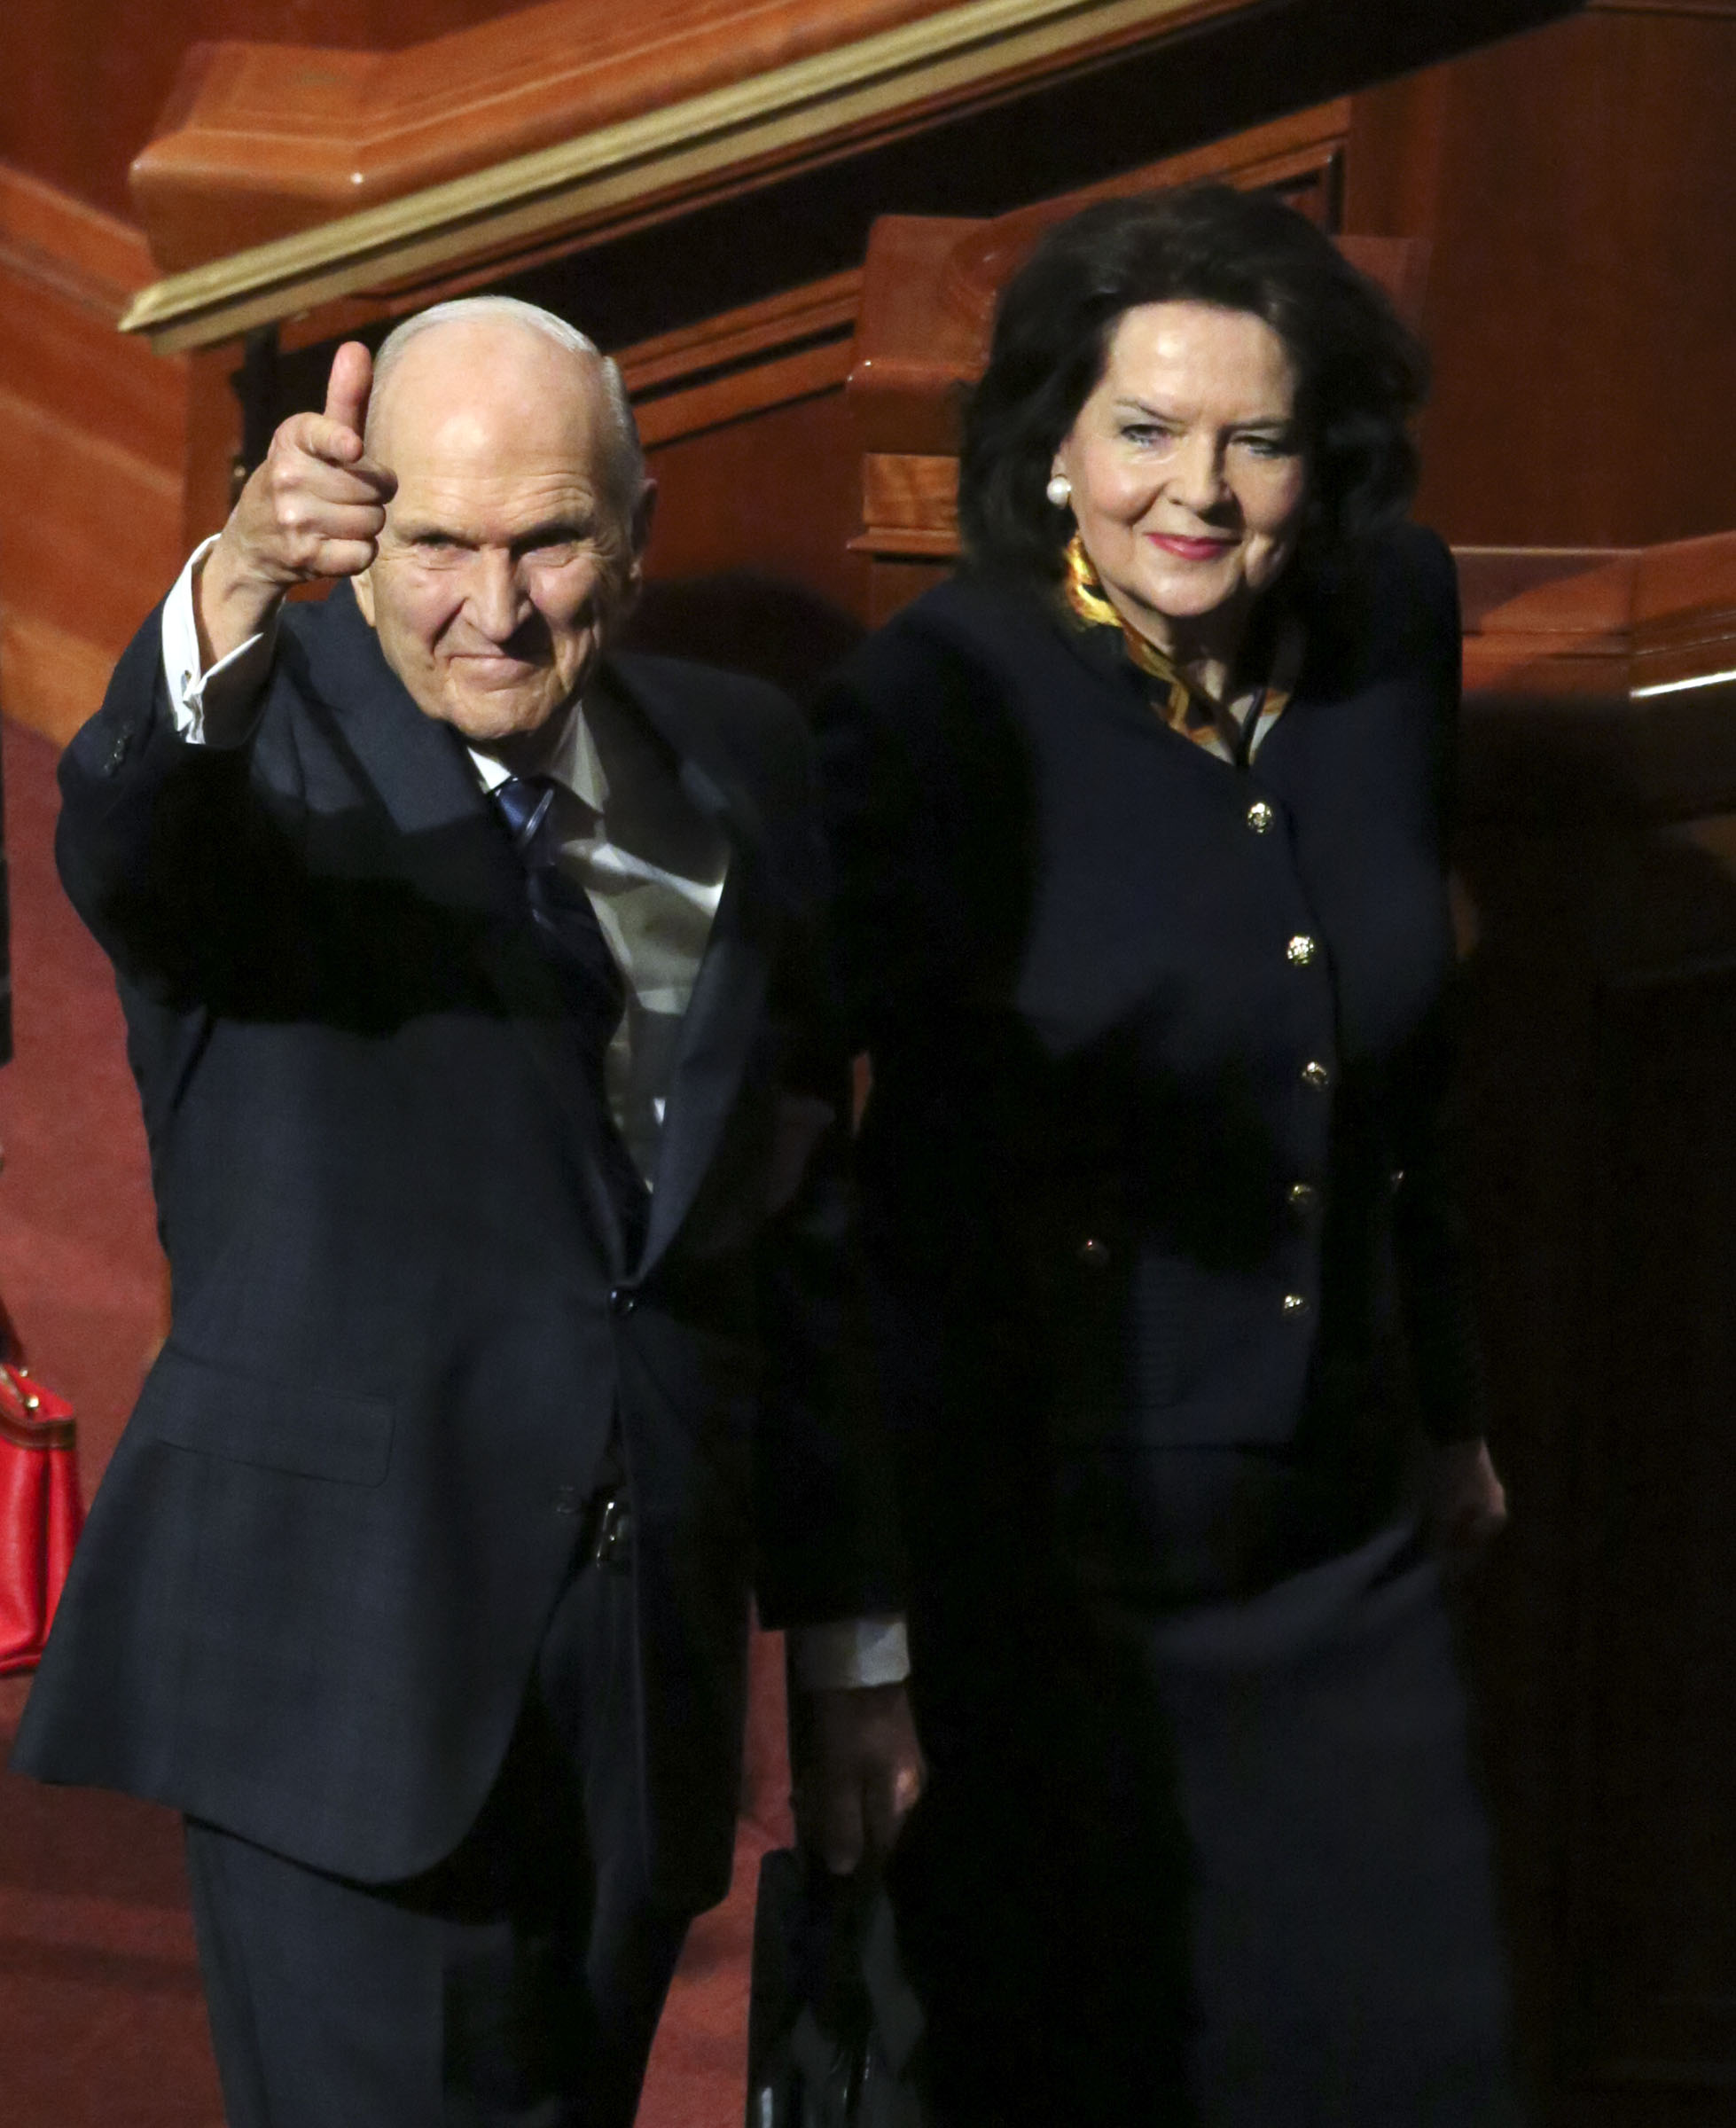 President Russell M. Nelson points to the crowd as he and his wife, Sister Wendy Nelson, leave the Sunday morning session of the 188th Semiannual General Conference of The Church of Jesus Christ of Latter-day Saints in the Conference Center in downtown Salt Lake City on Sunday, Oct. 7, 2018.